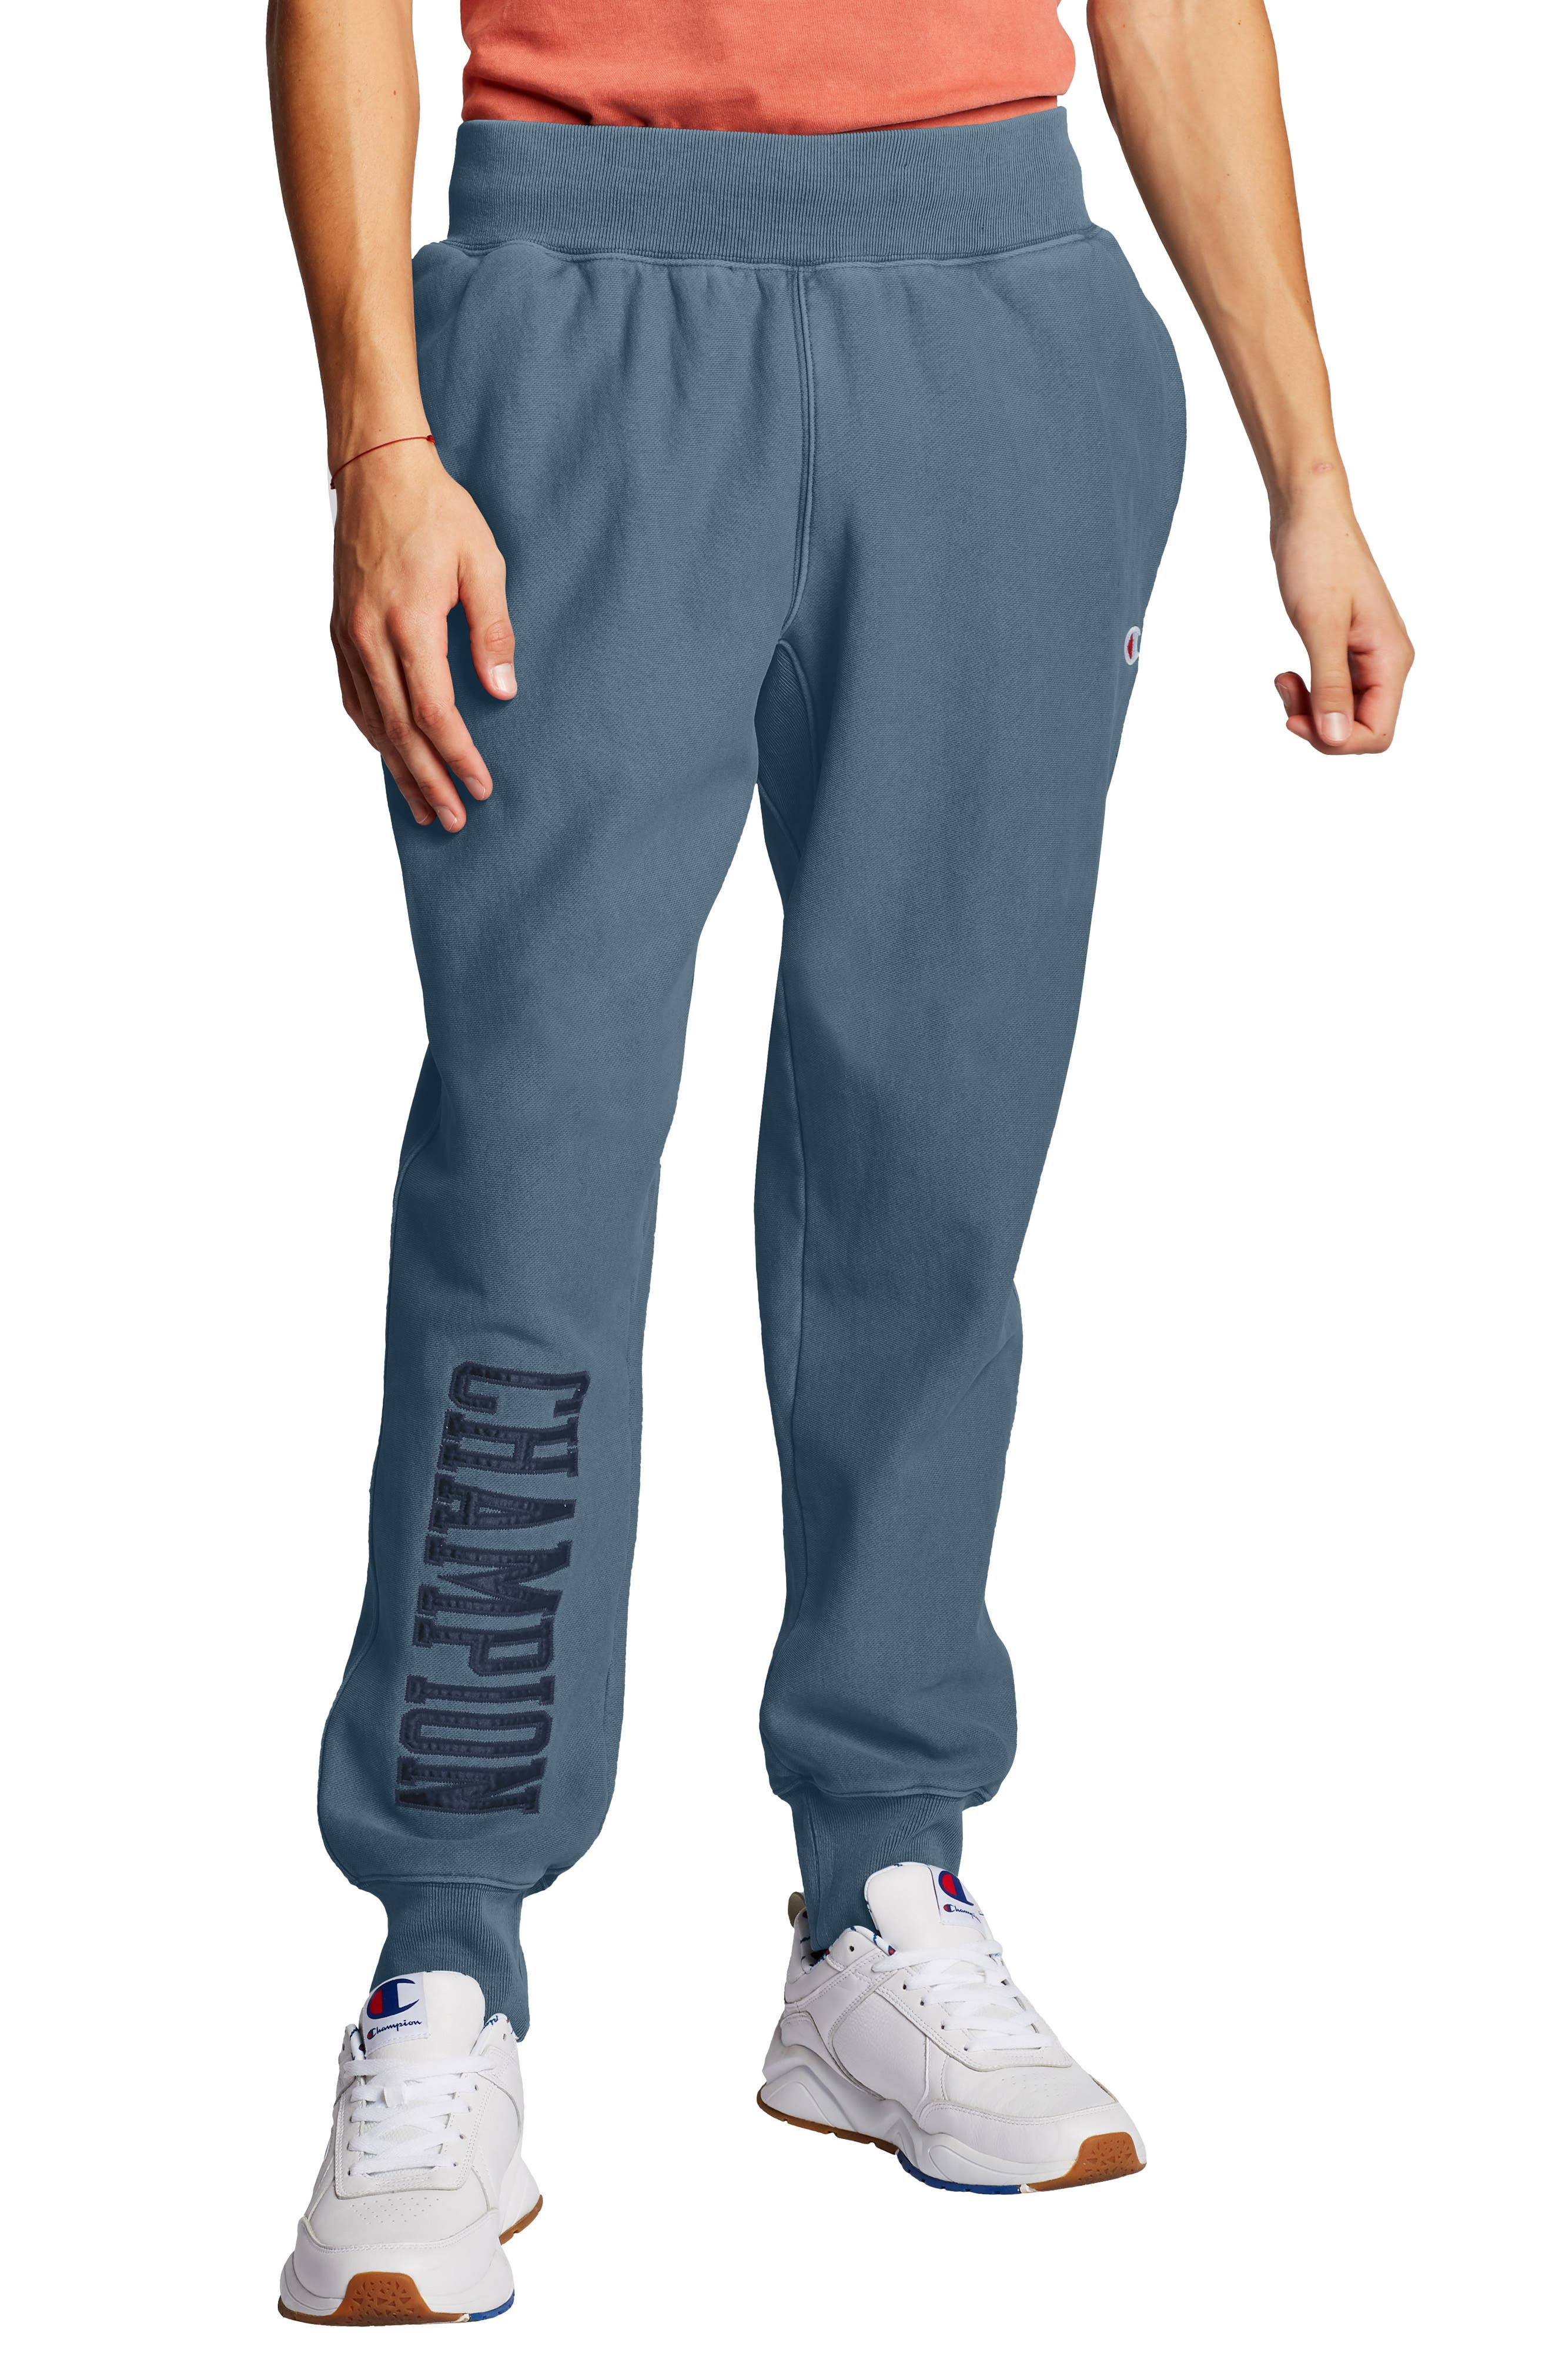 Men's Champion Vintage Wash Sweatpants